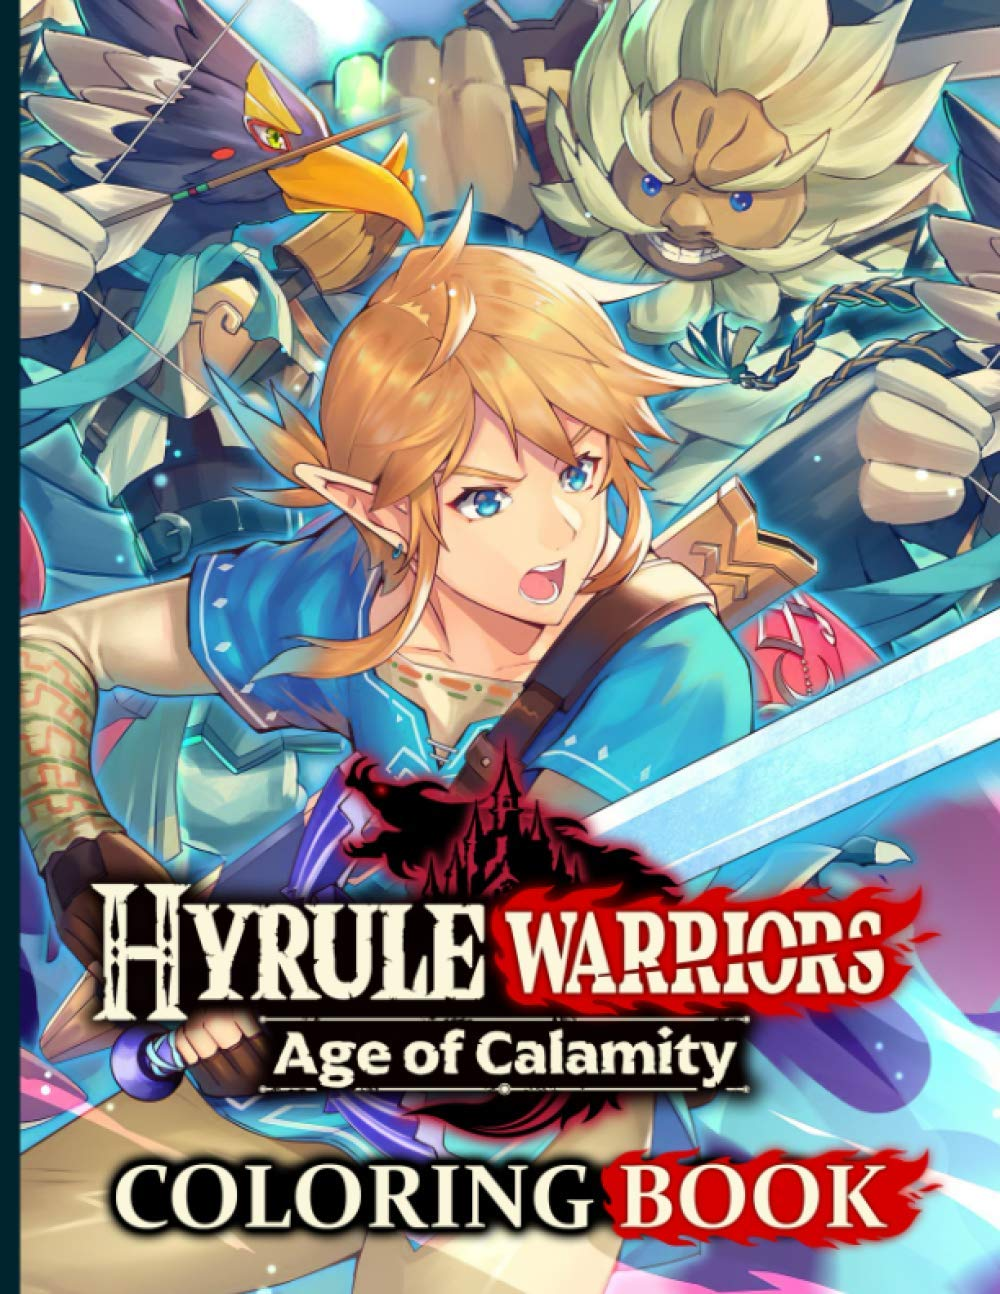 Hyrule Warriors Age Of Calamity Coloring Book Color Wonder Coloring Books For Adults Hyrule Warriors Age Of Calamity Unofficial High Quality Akahito Uno 9798553630669 Amazon Com Books